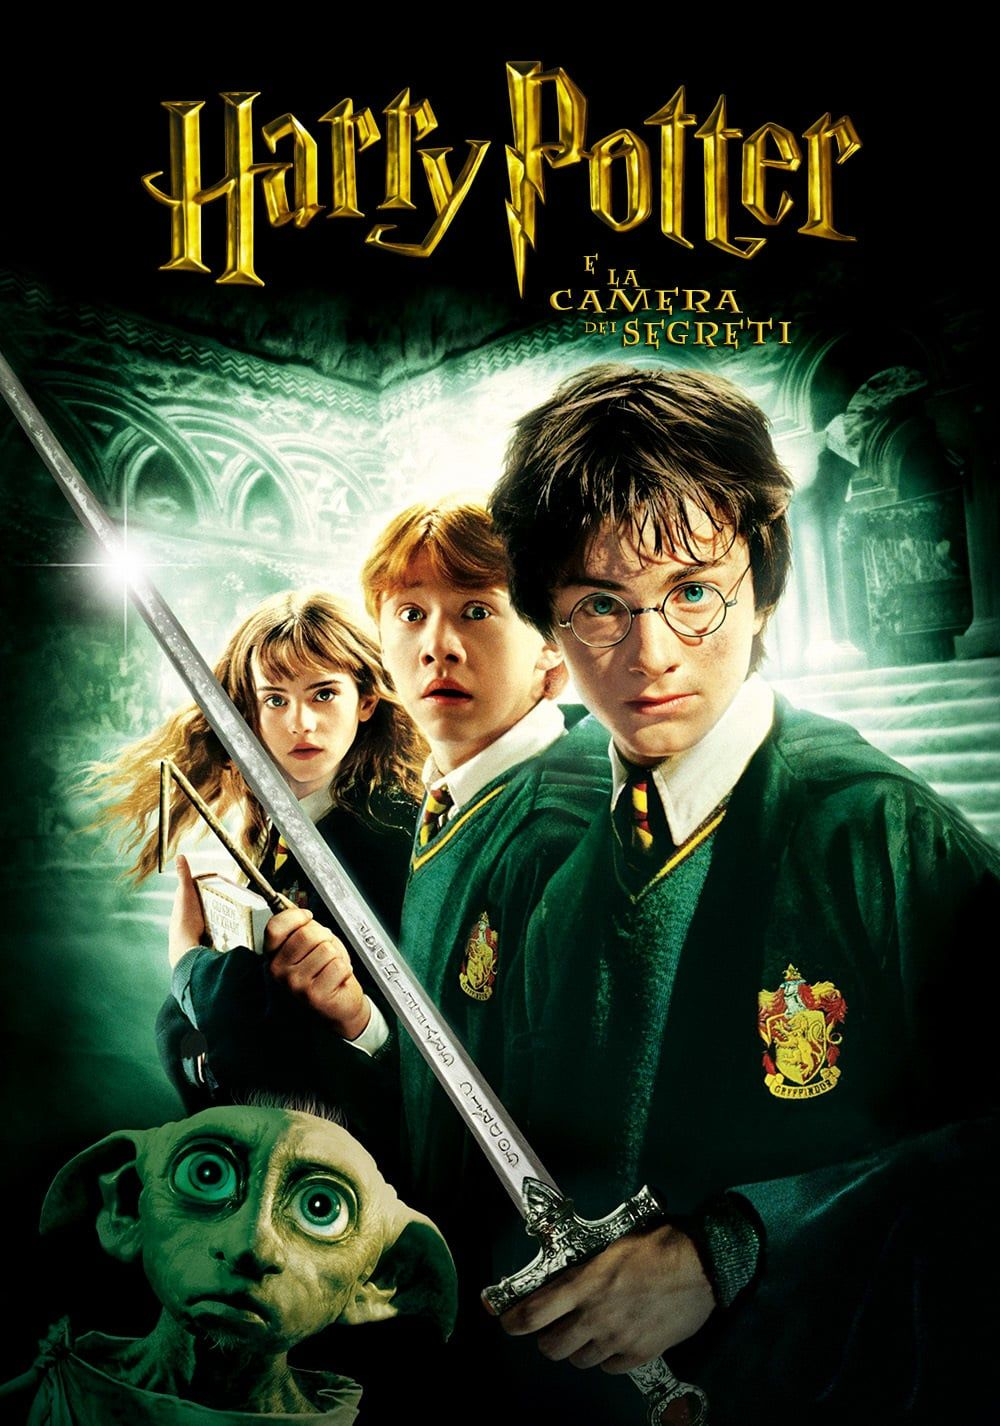 harry potter and the chamber of secrets full movie with english subtitles hd